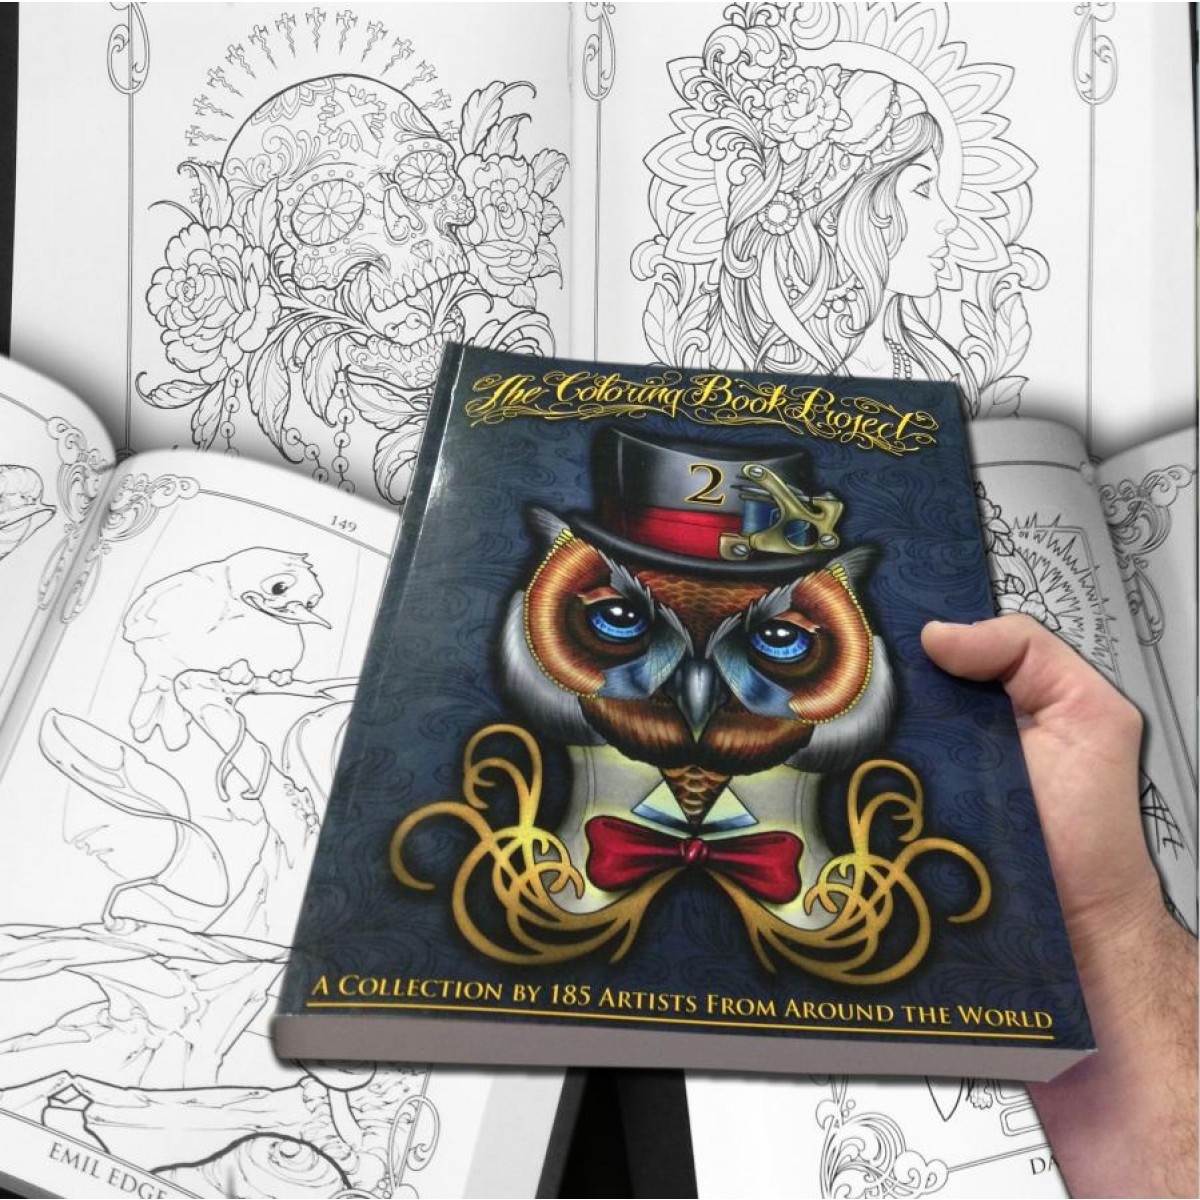 The coloring book project volume 2